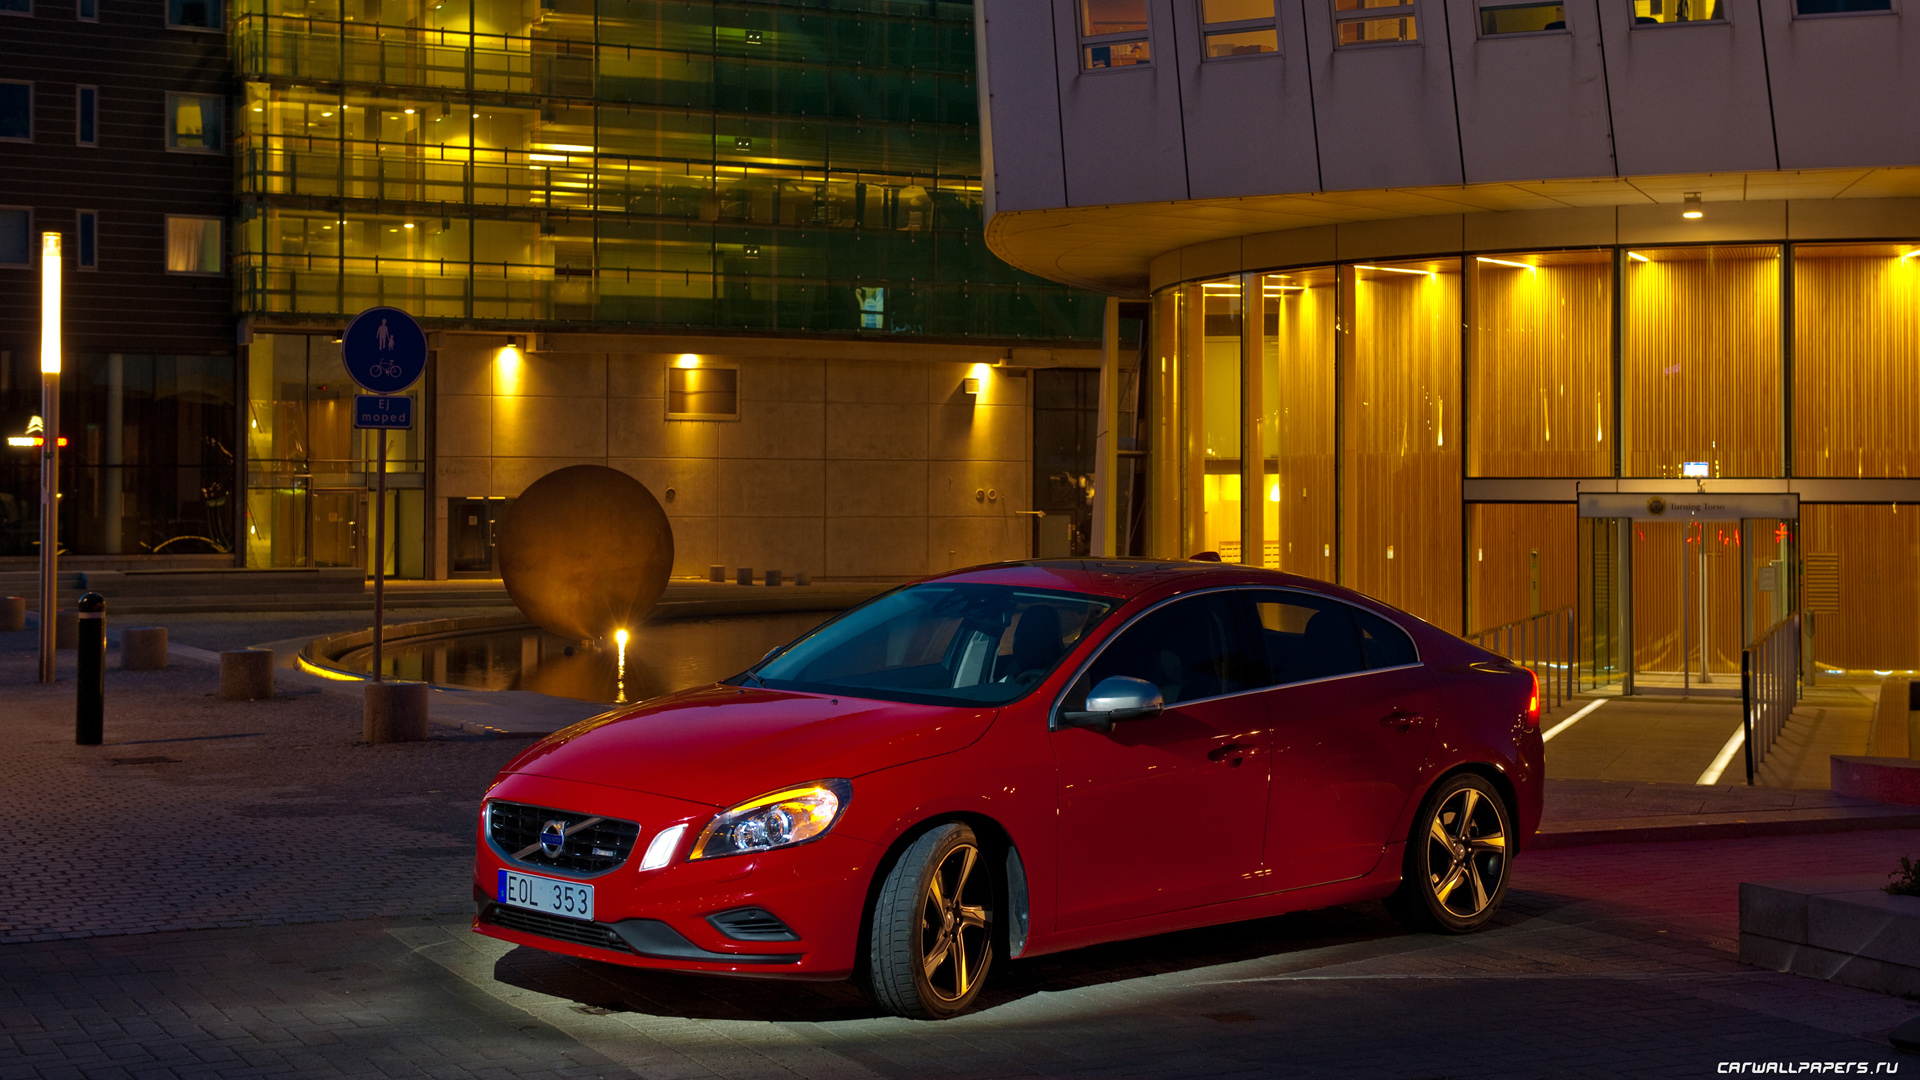 Cars Desktop Wallpapers Volvo S60 T6 Awd R Design 2012,King Crown Tattoo Designs On Hand